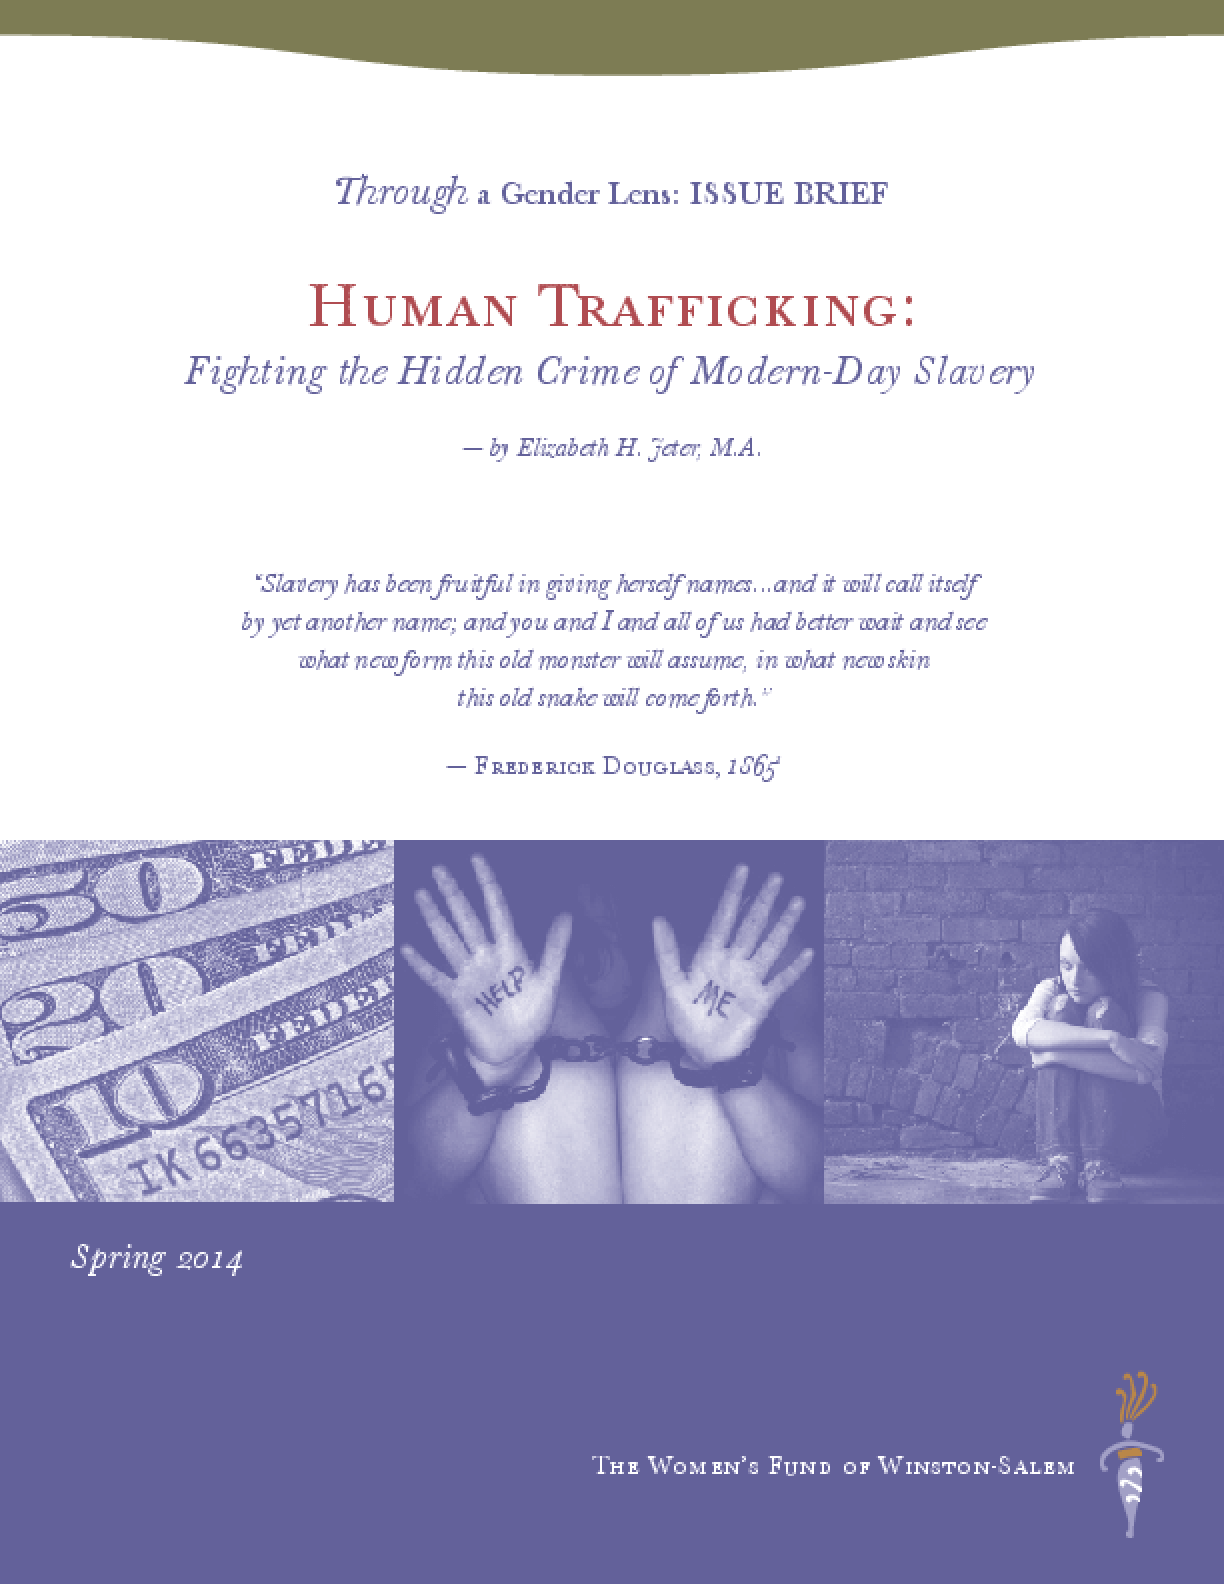 Human Trafficking: Fighting the Hidden Crime of Modern-Day Slavery